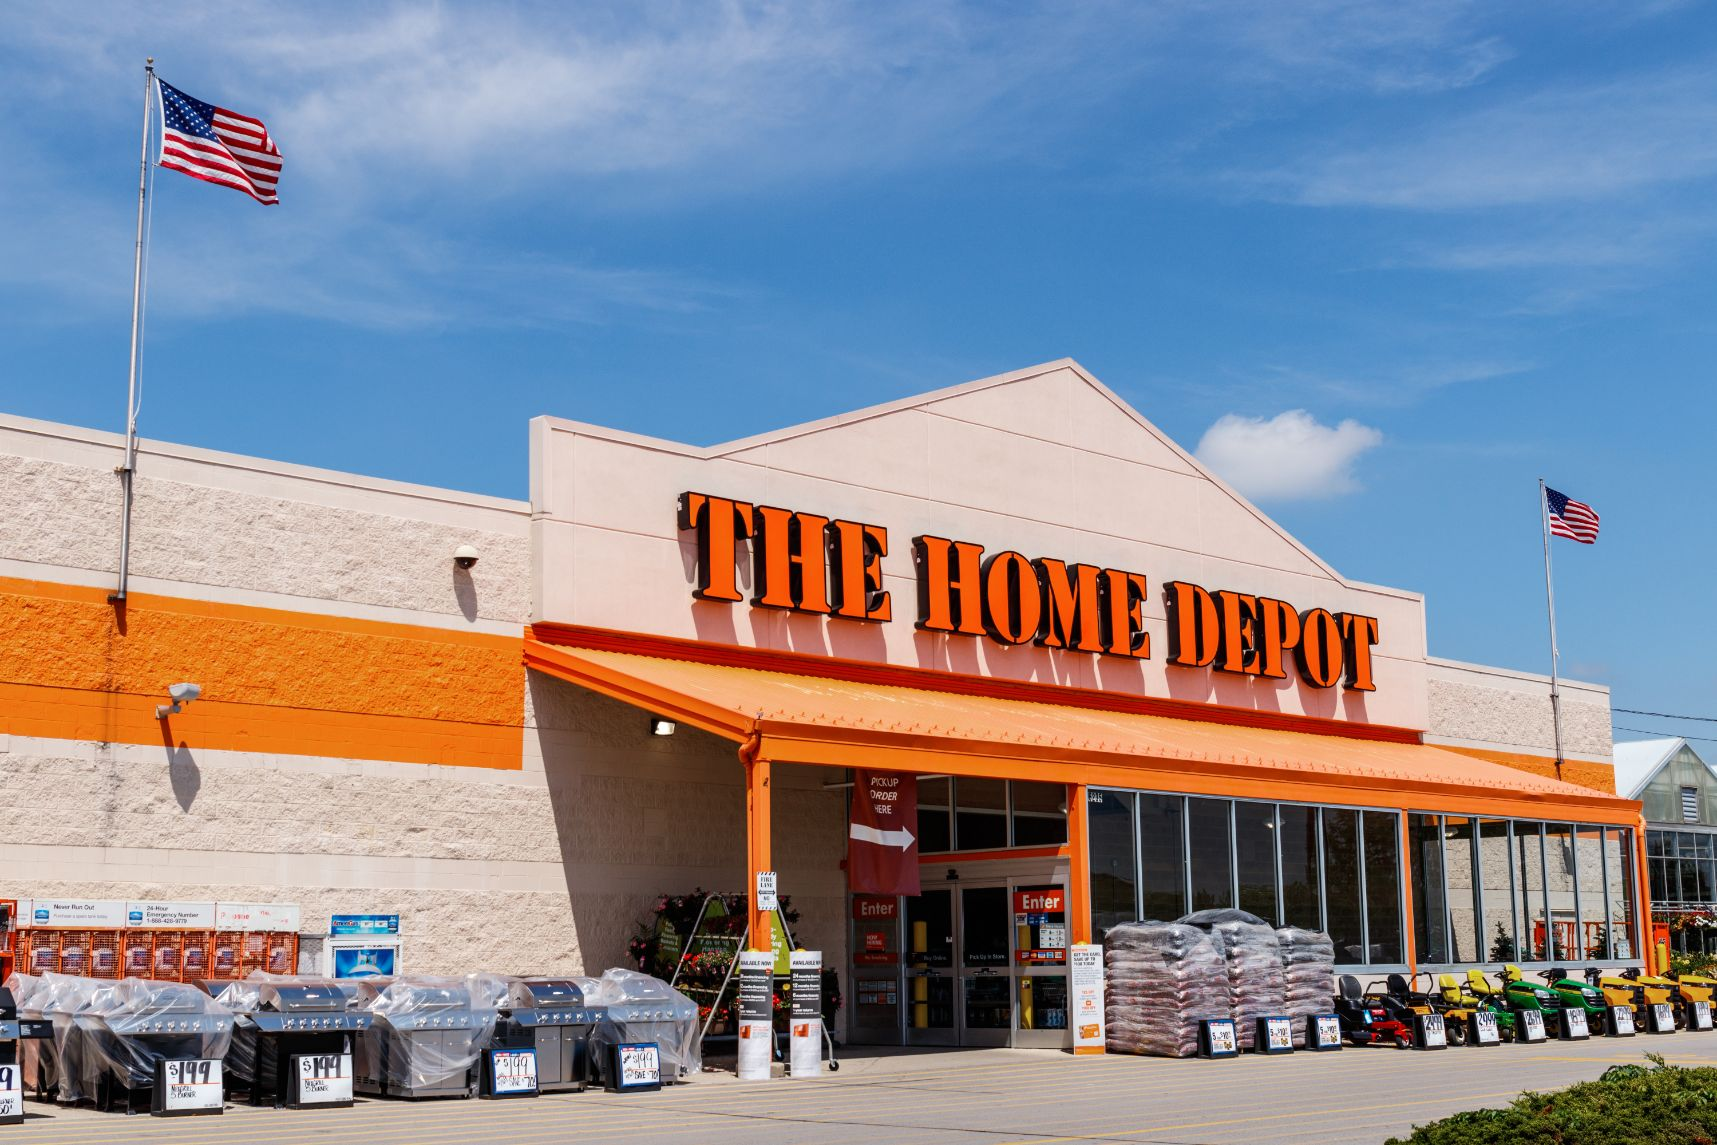 Home Depot says 'no' to usual Black Friday, another sign brands must adapt